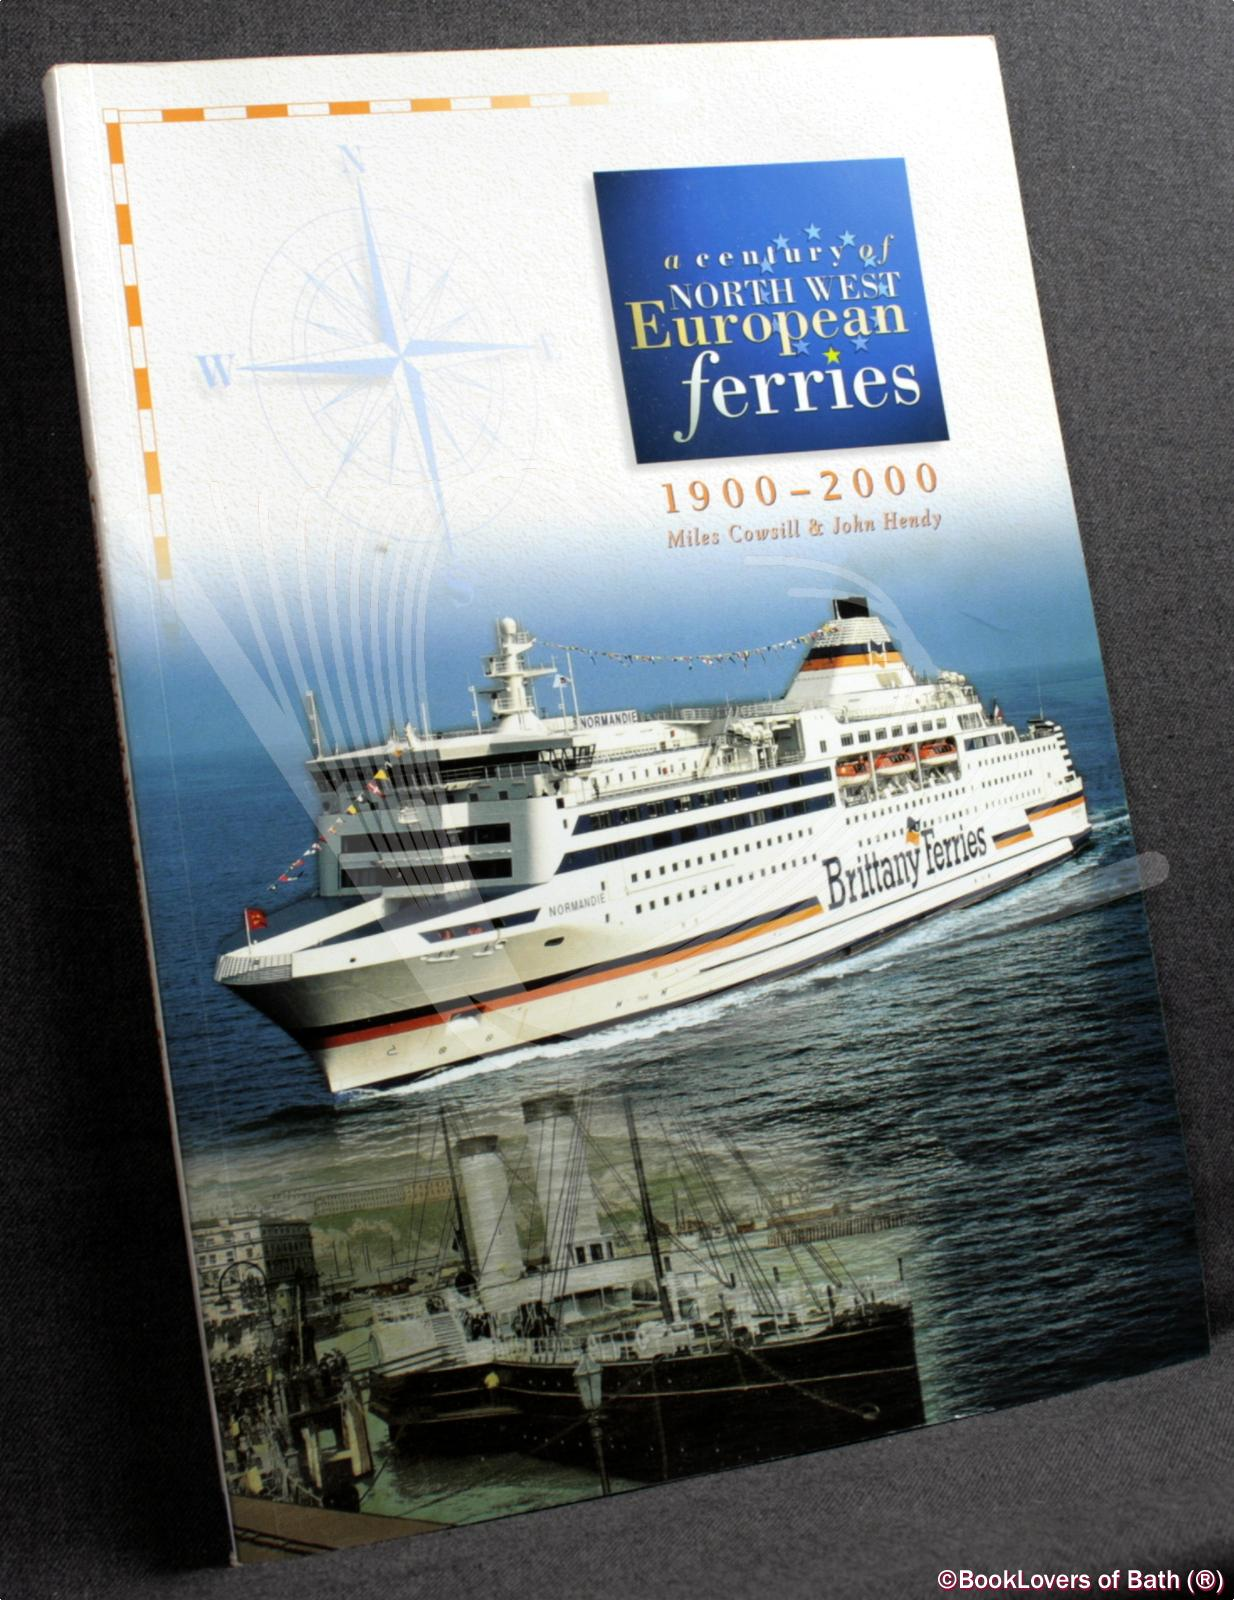 A Century of North West European Ferries 1900-2000 - Miles Cowsill & John Hendy